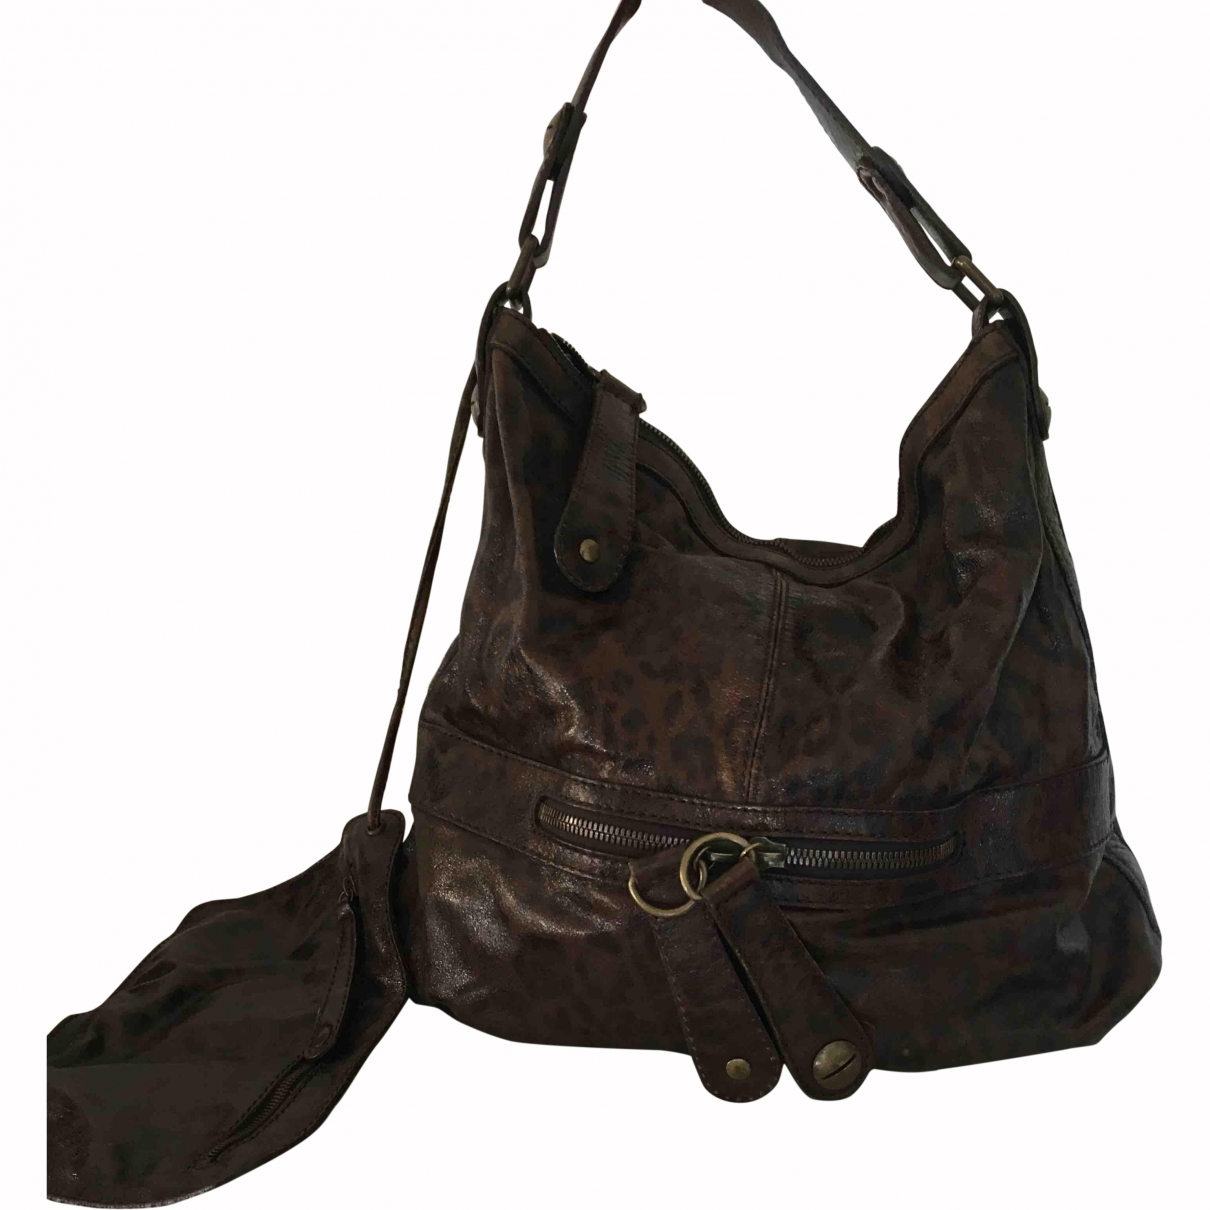 Gerard Darel Midday Midnight Brown Patent leather handbag for Women \N